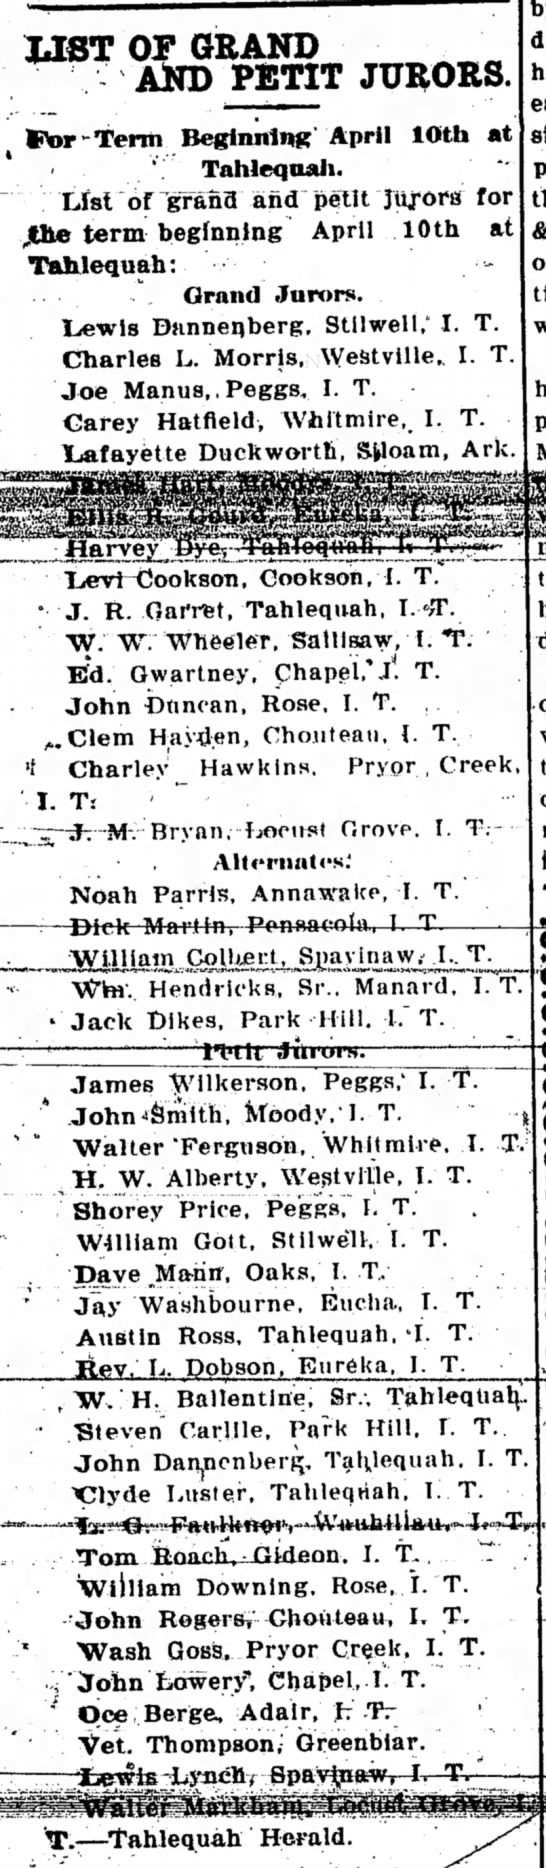 Ed. Gwartn3y on grand jury, muskogee daily phoenix, march 17, 1905 - UST OP GRAND AND PETIT JURORS t Ctor-Tenh...